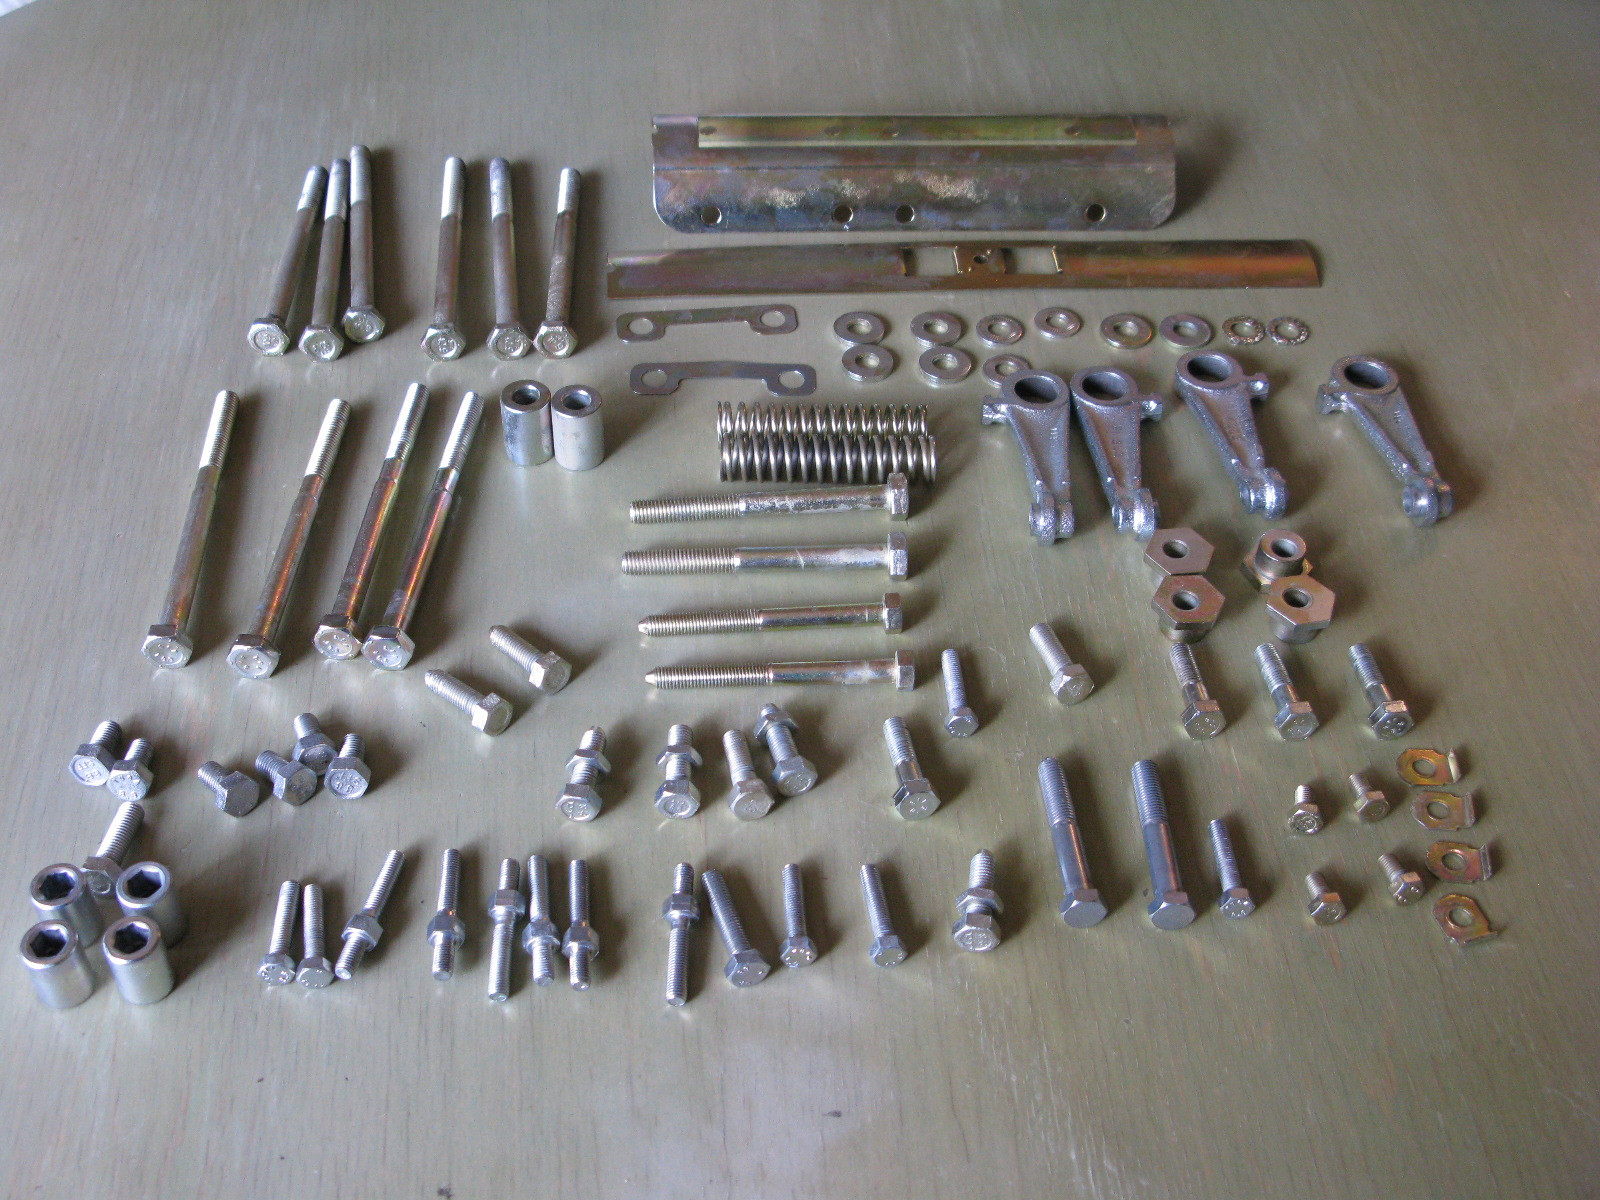 The 20 Best Ideas for Diy Zinc Plating - Best Collections